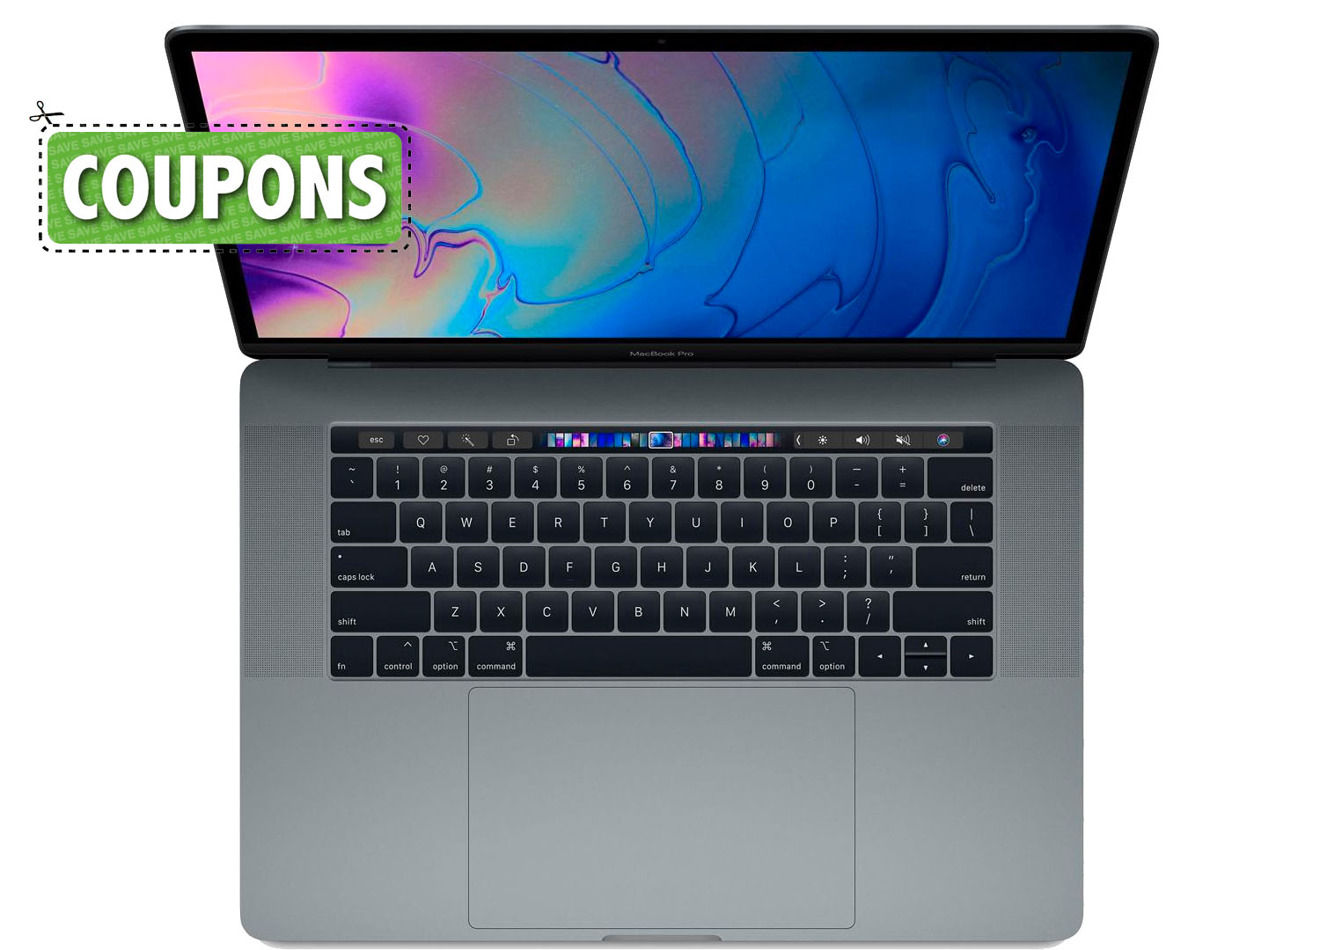 Apple 2018 MacBook Pro with coupon graphic